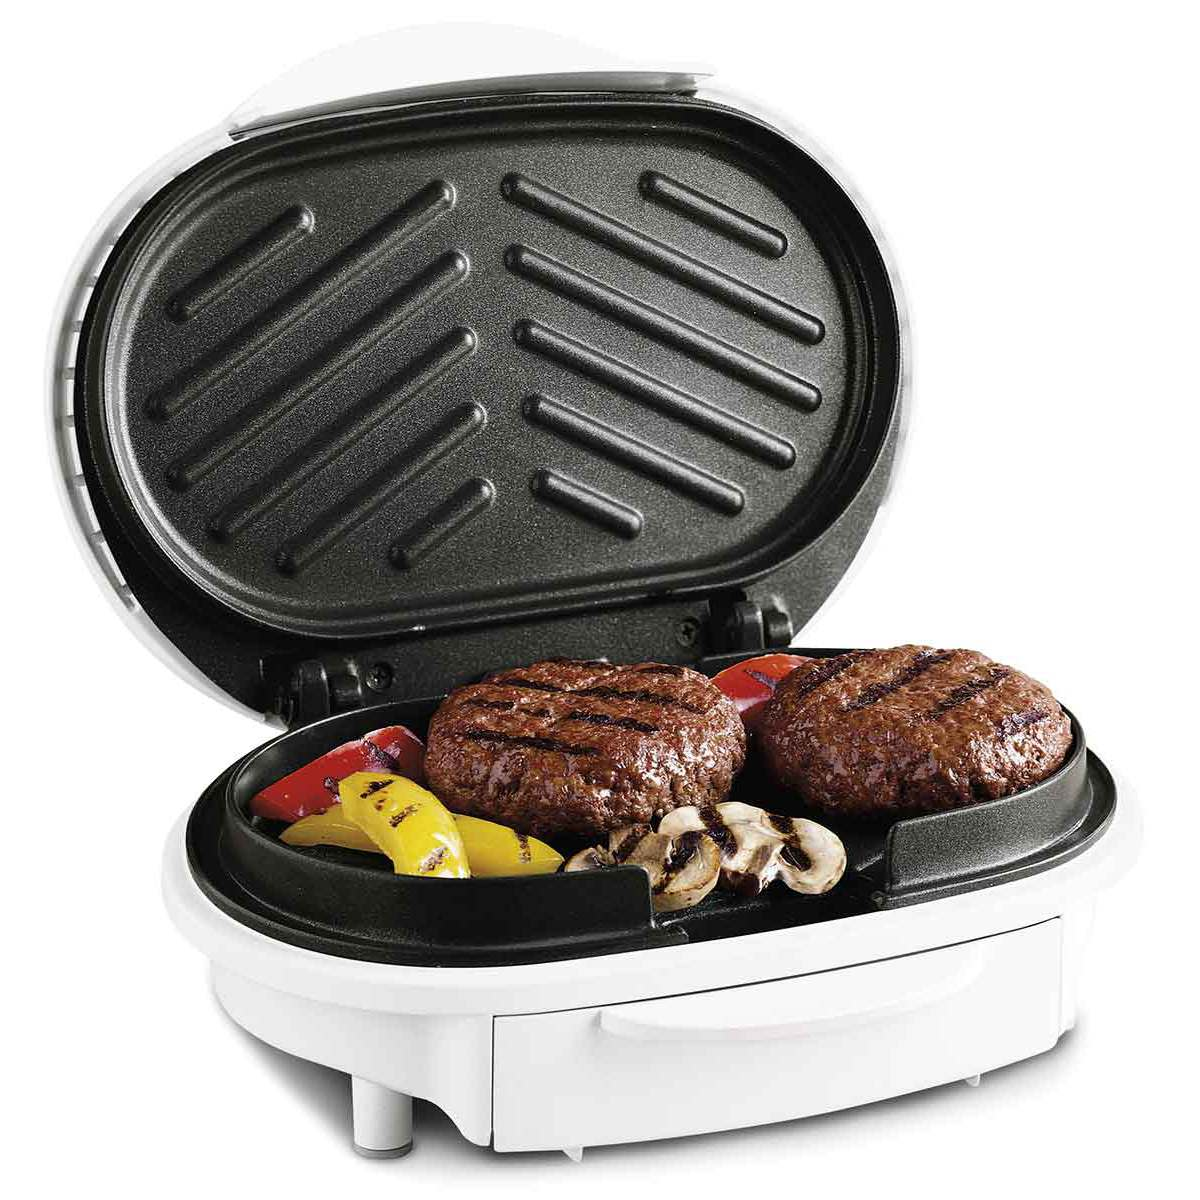 HealthSmart® Contact Grill (25219)